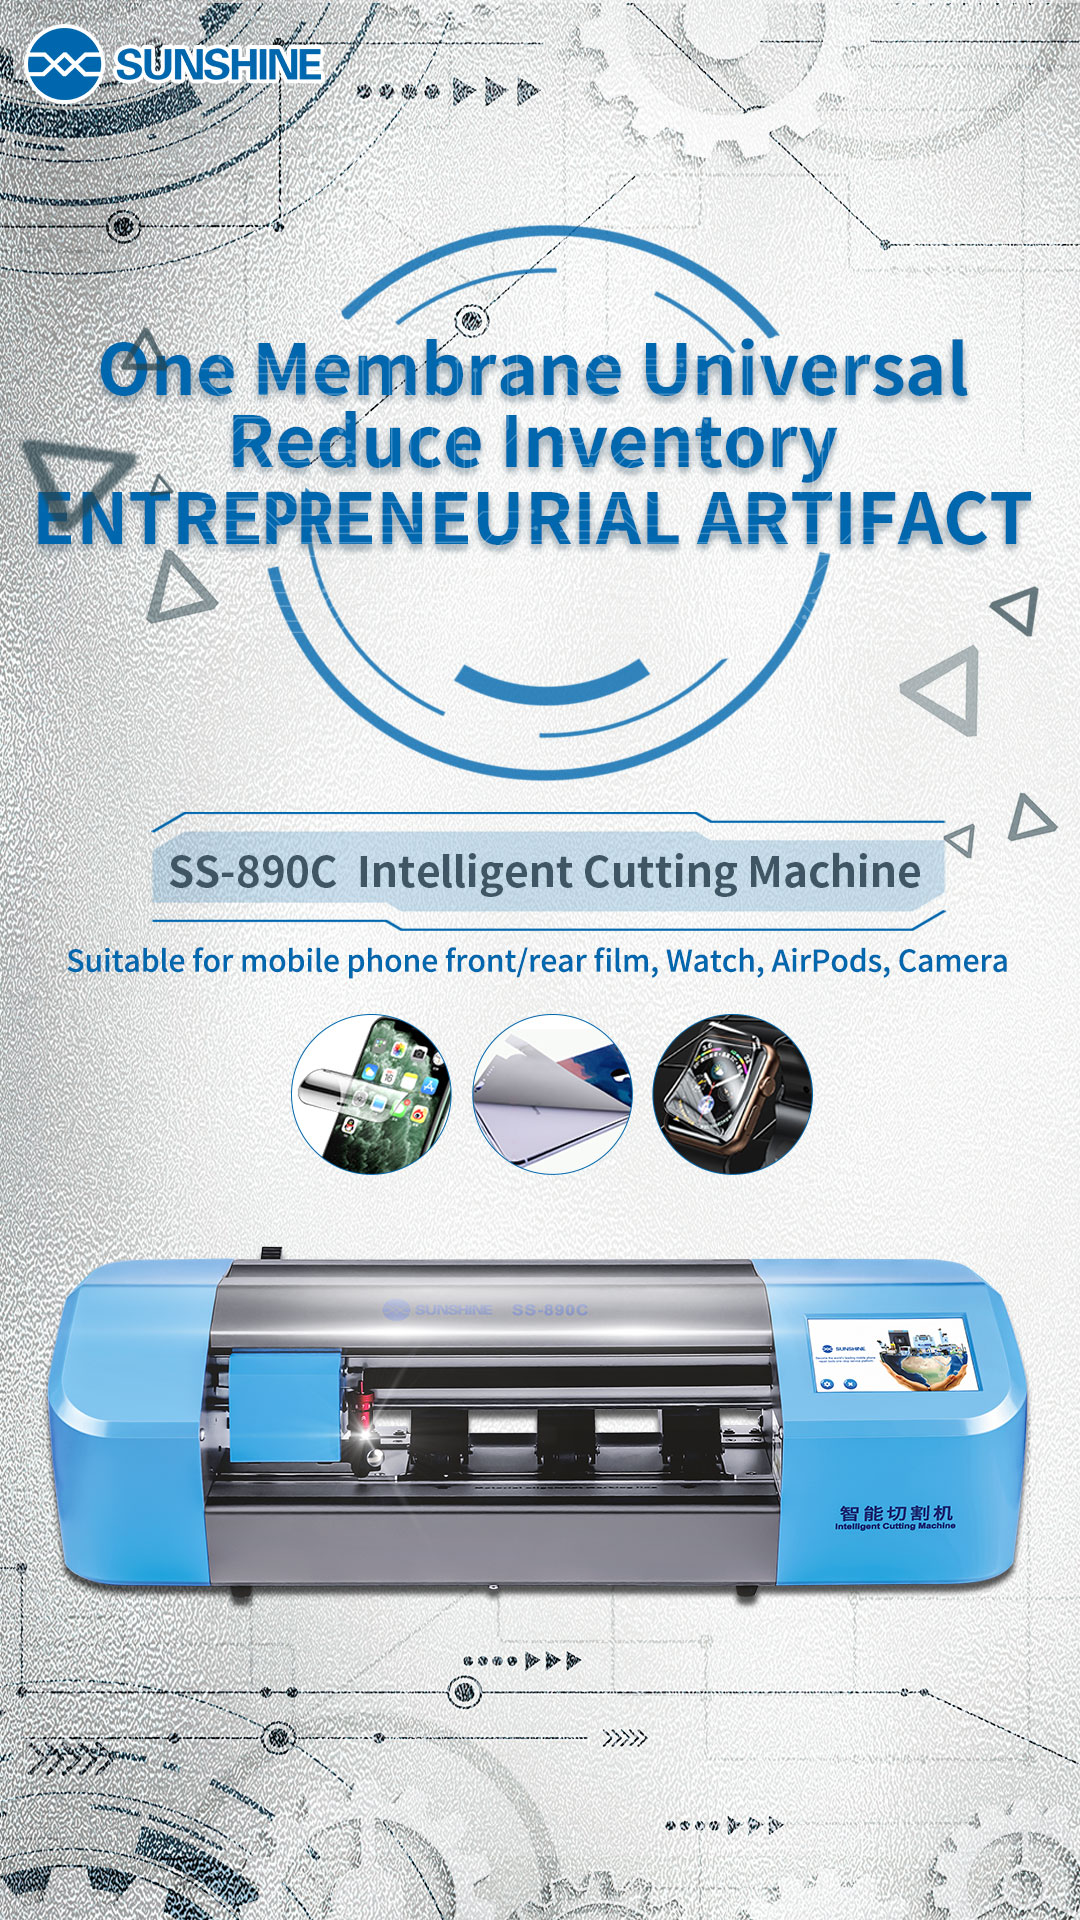 SUNSHINE SS-890C Phone and Table Pad Screen Protector Cutting Machine and Cutter Head CoreSUNSHINE SS-890C Phone and Table Pad Screen Protector Cutting Machine and Cutter Head Core